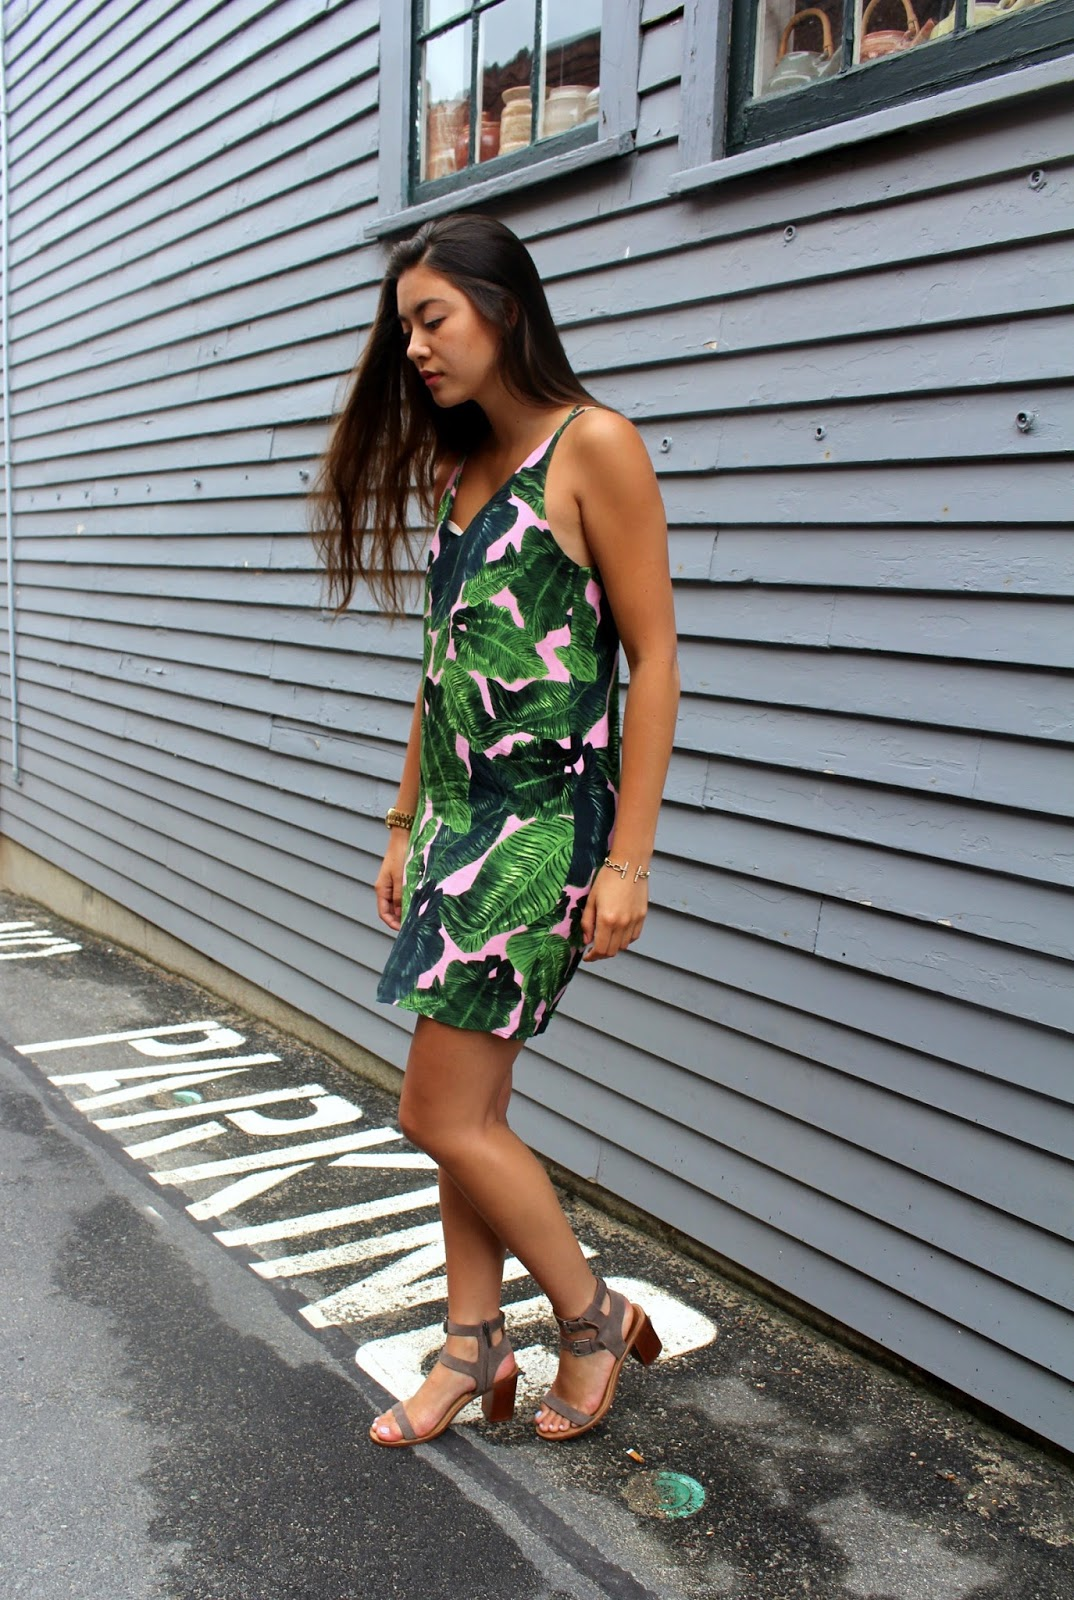 f0db4f583a17 Dress: Topshop | Sandals: Dolce Vita | Sunglasses: Quay Australia | Watch:  Michael Kors